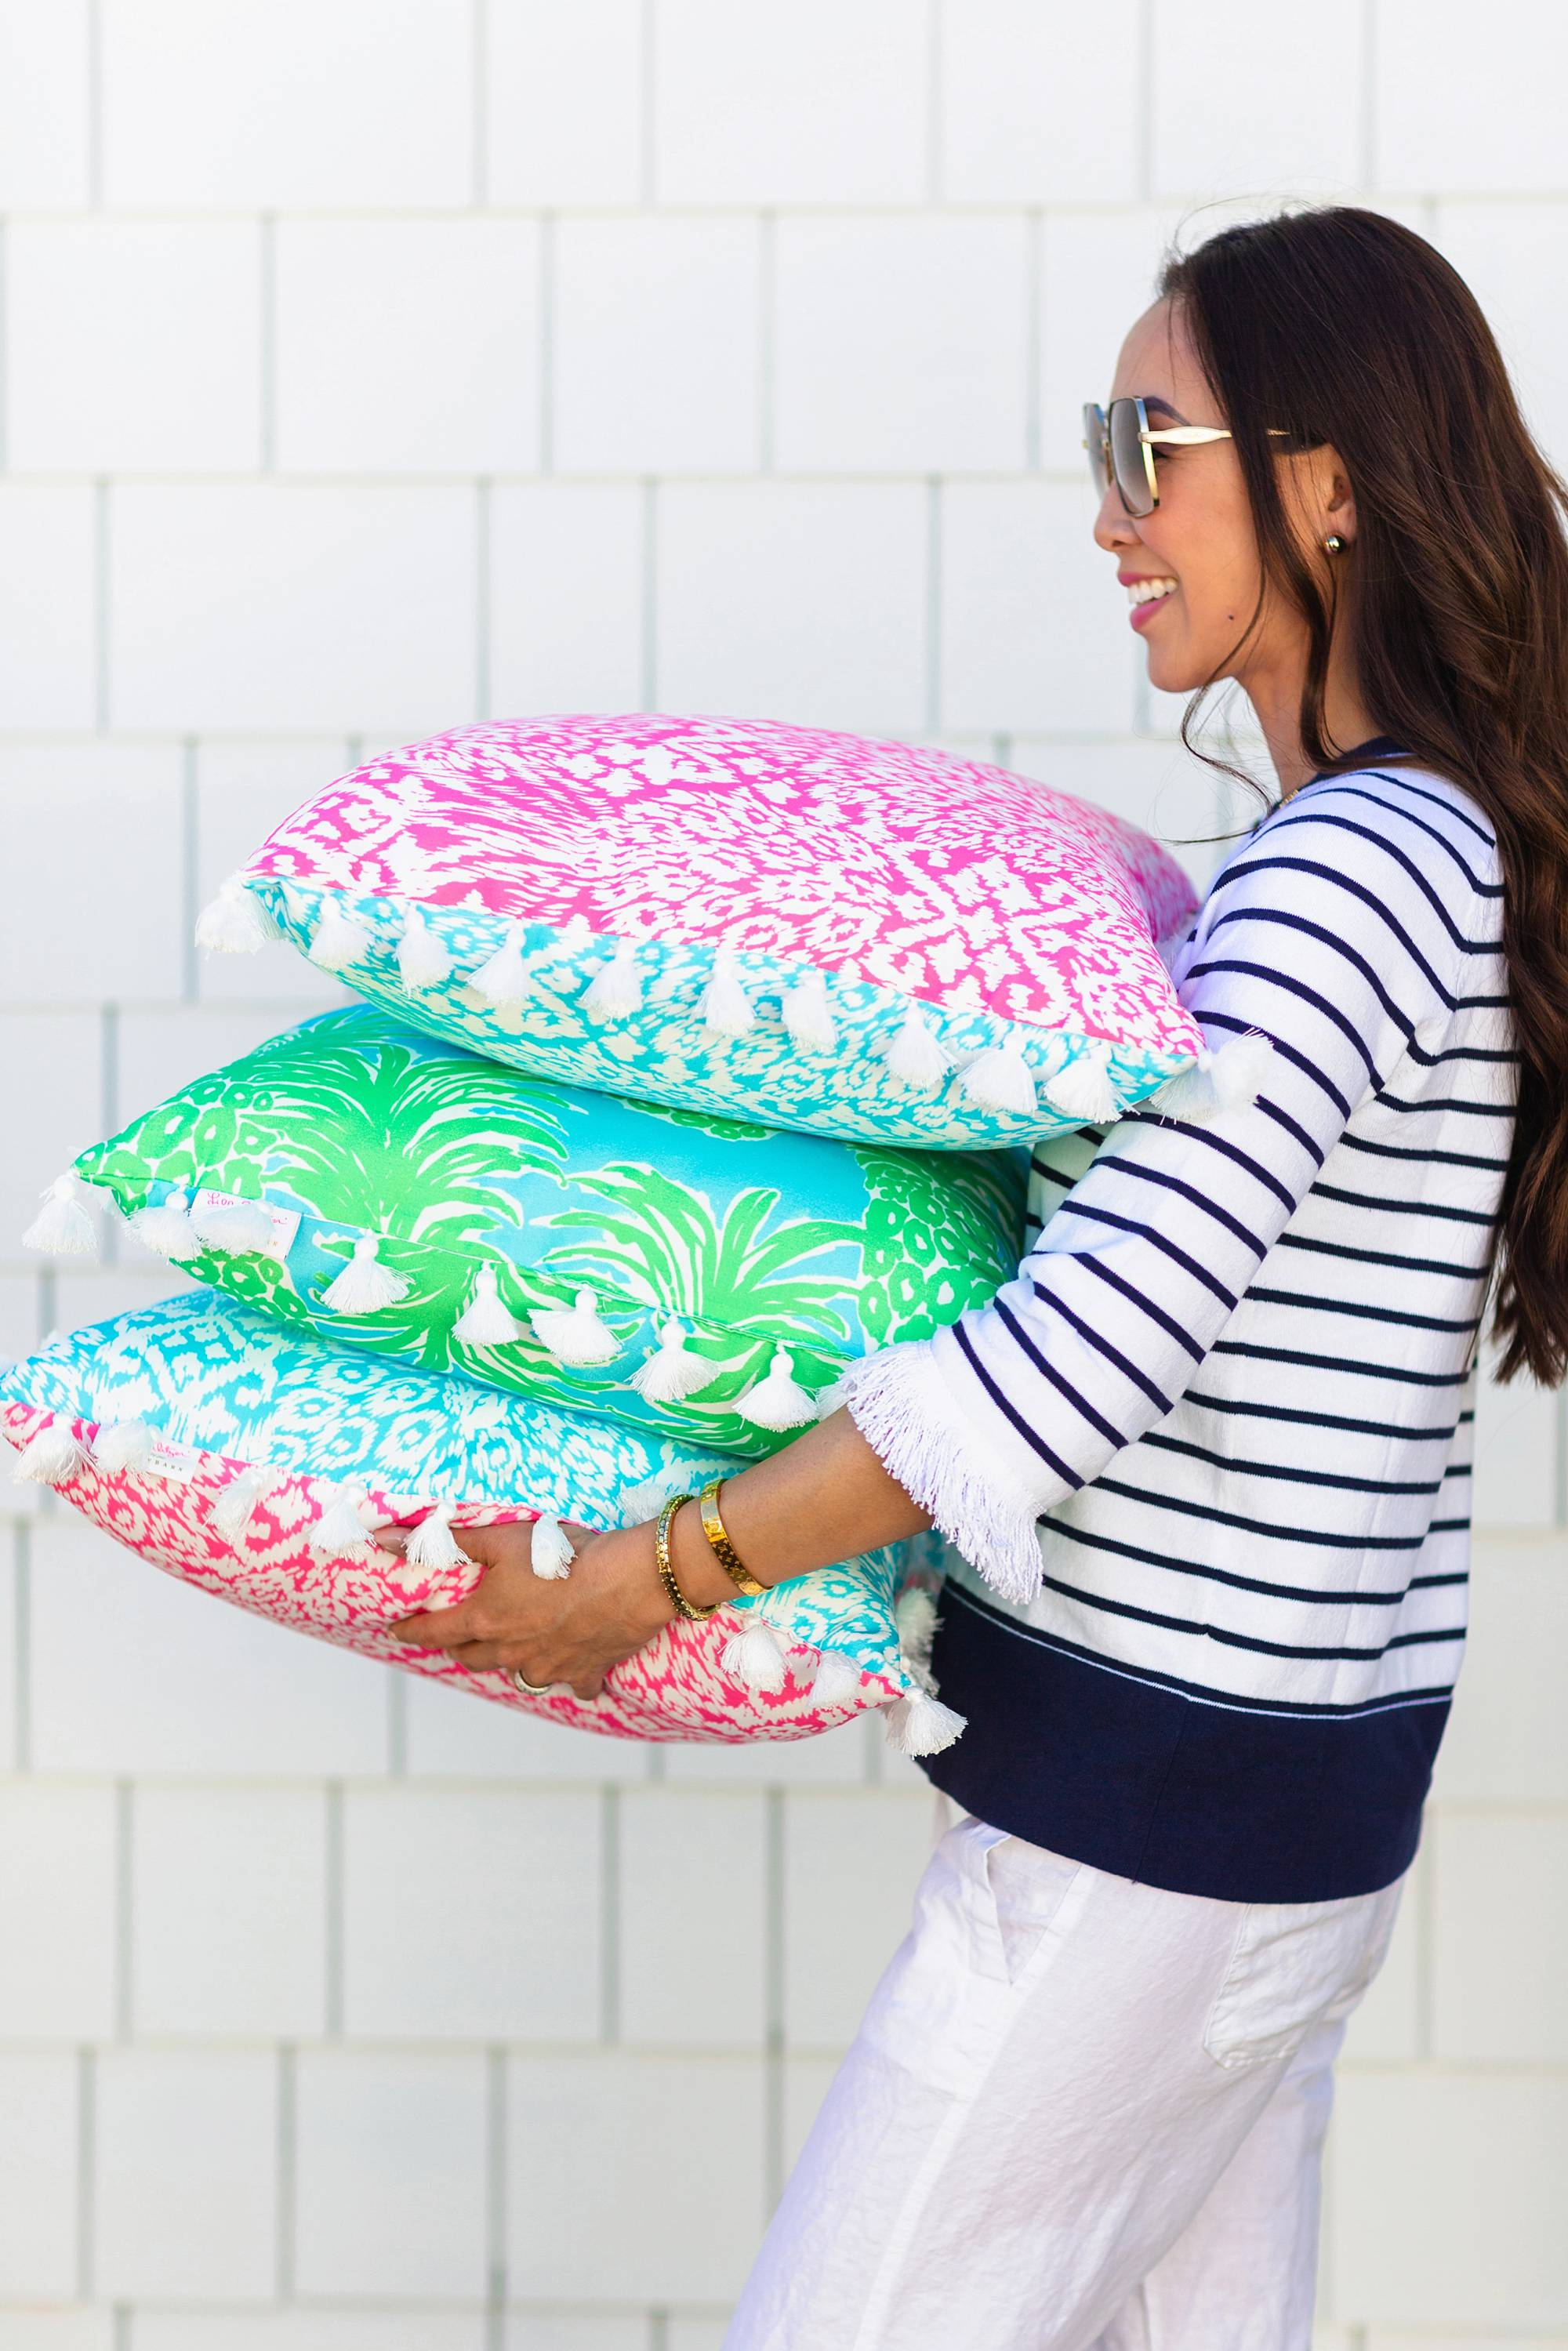 Lilly Pulitzer x Pottery Barn collaboration Spring summer 2019 carrying pile of lilly Pulitzer outdoor pillows